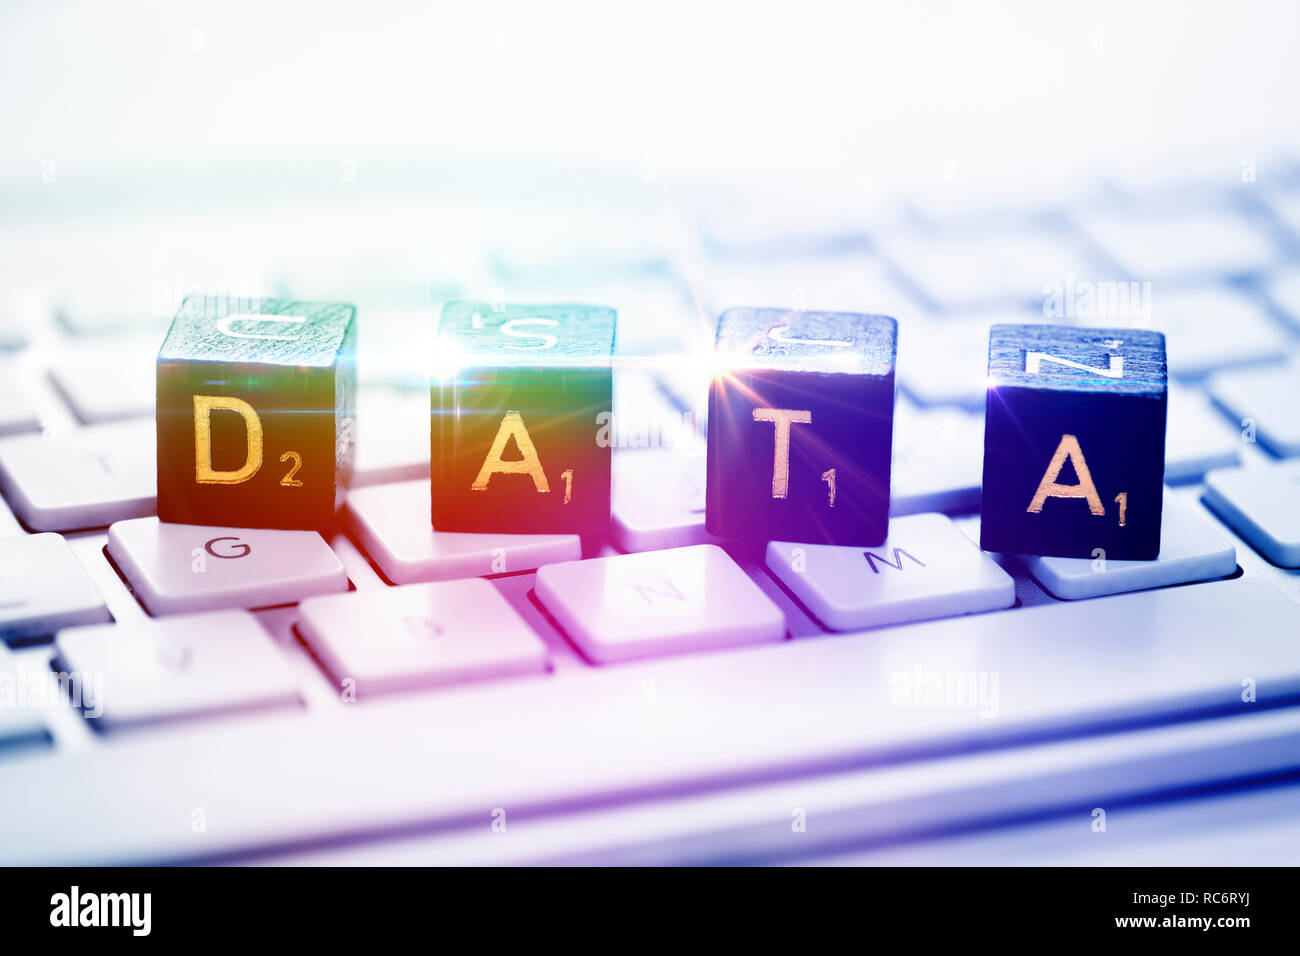 Letter cubes forming the word data on a computer keyboard - Stock Image